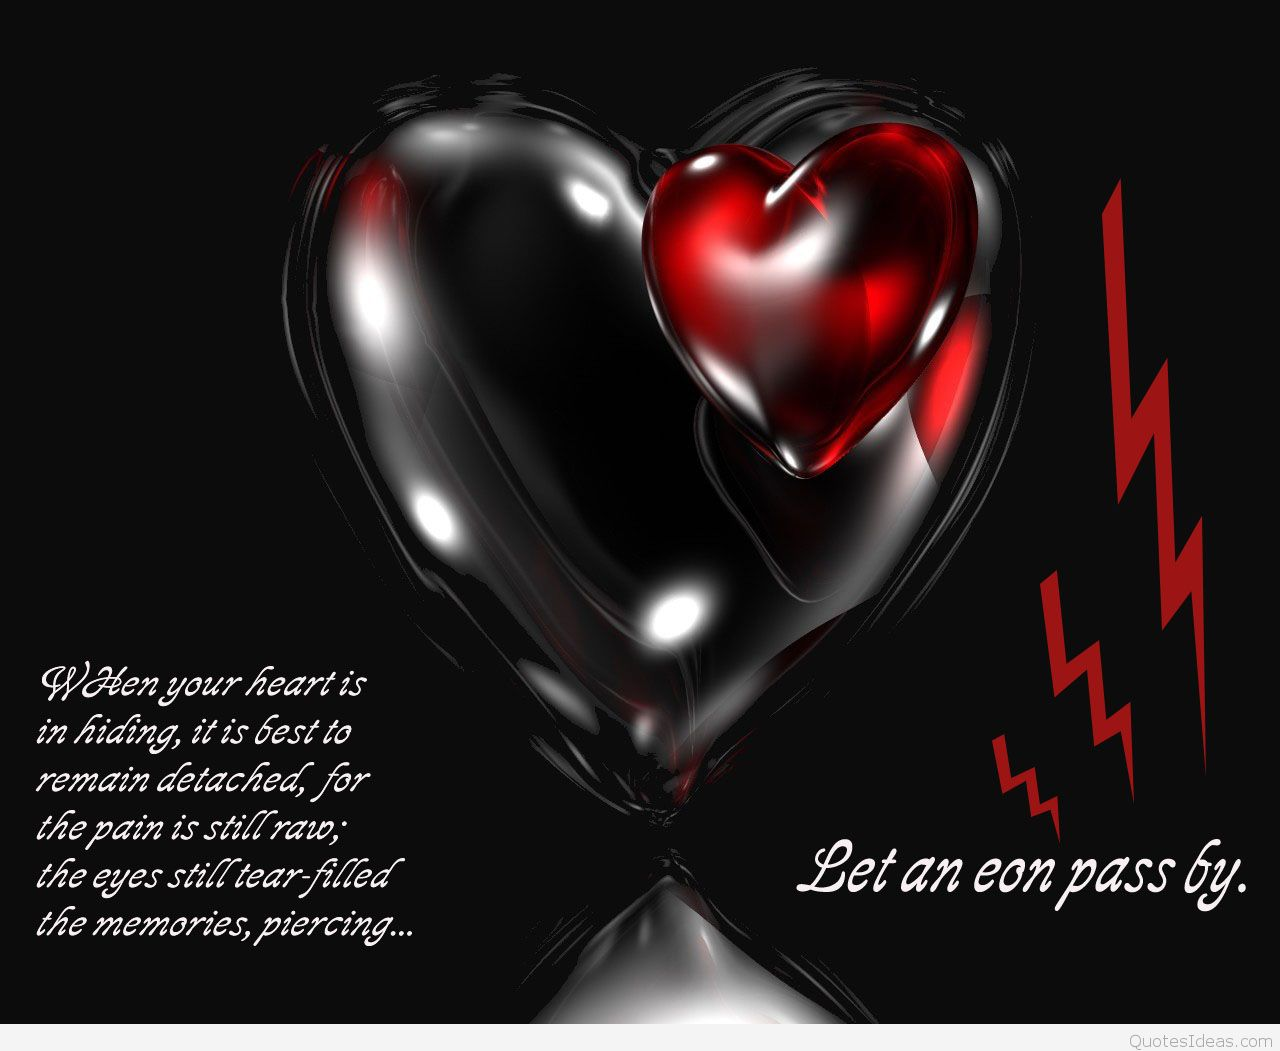 Broken heart sad quotes with wallpapers images hd 2016 1280x1051